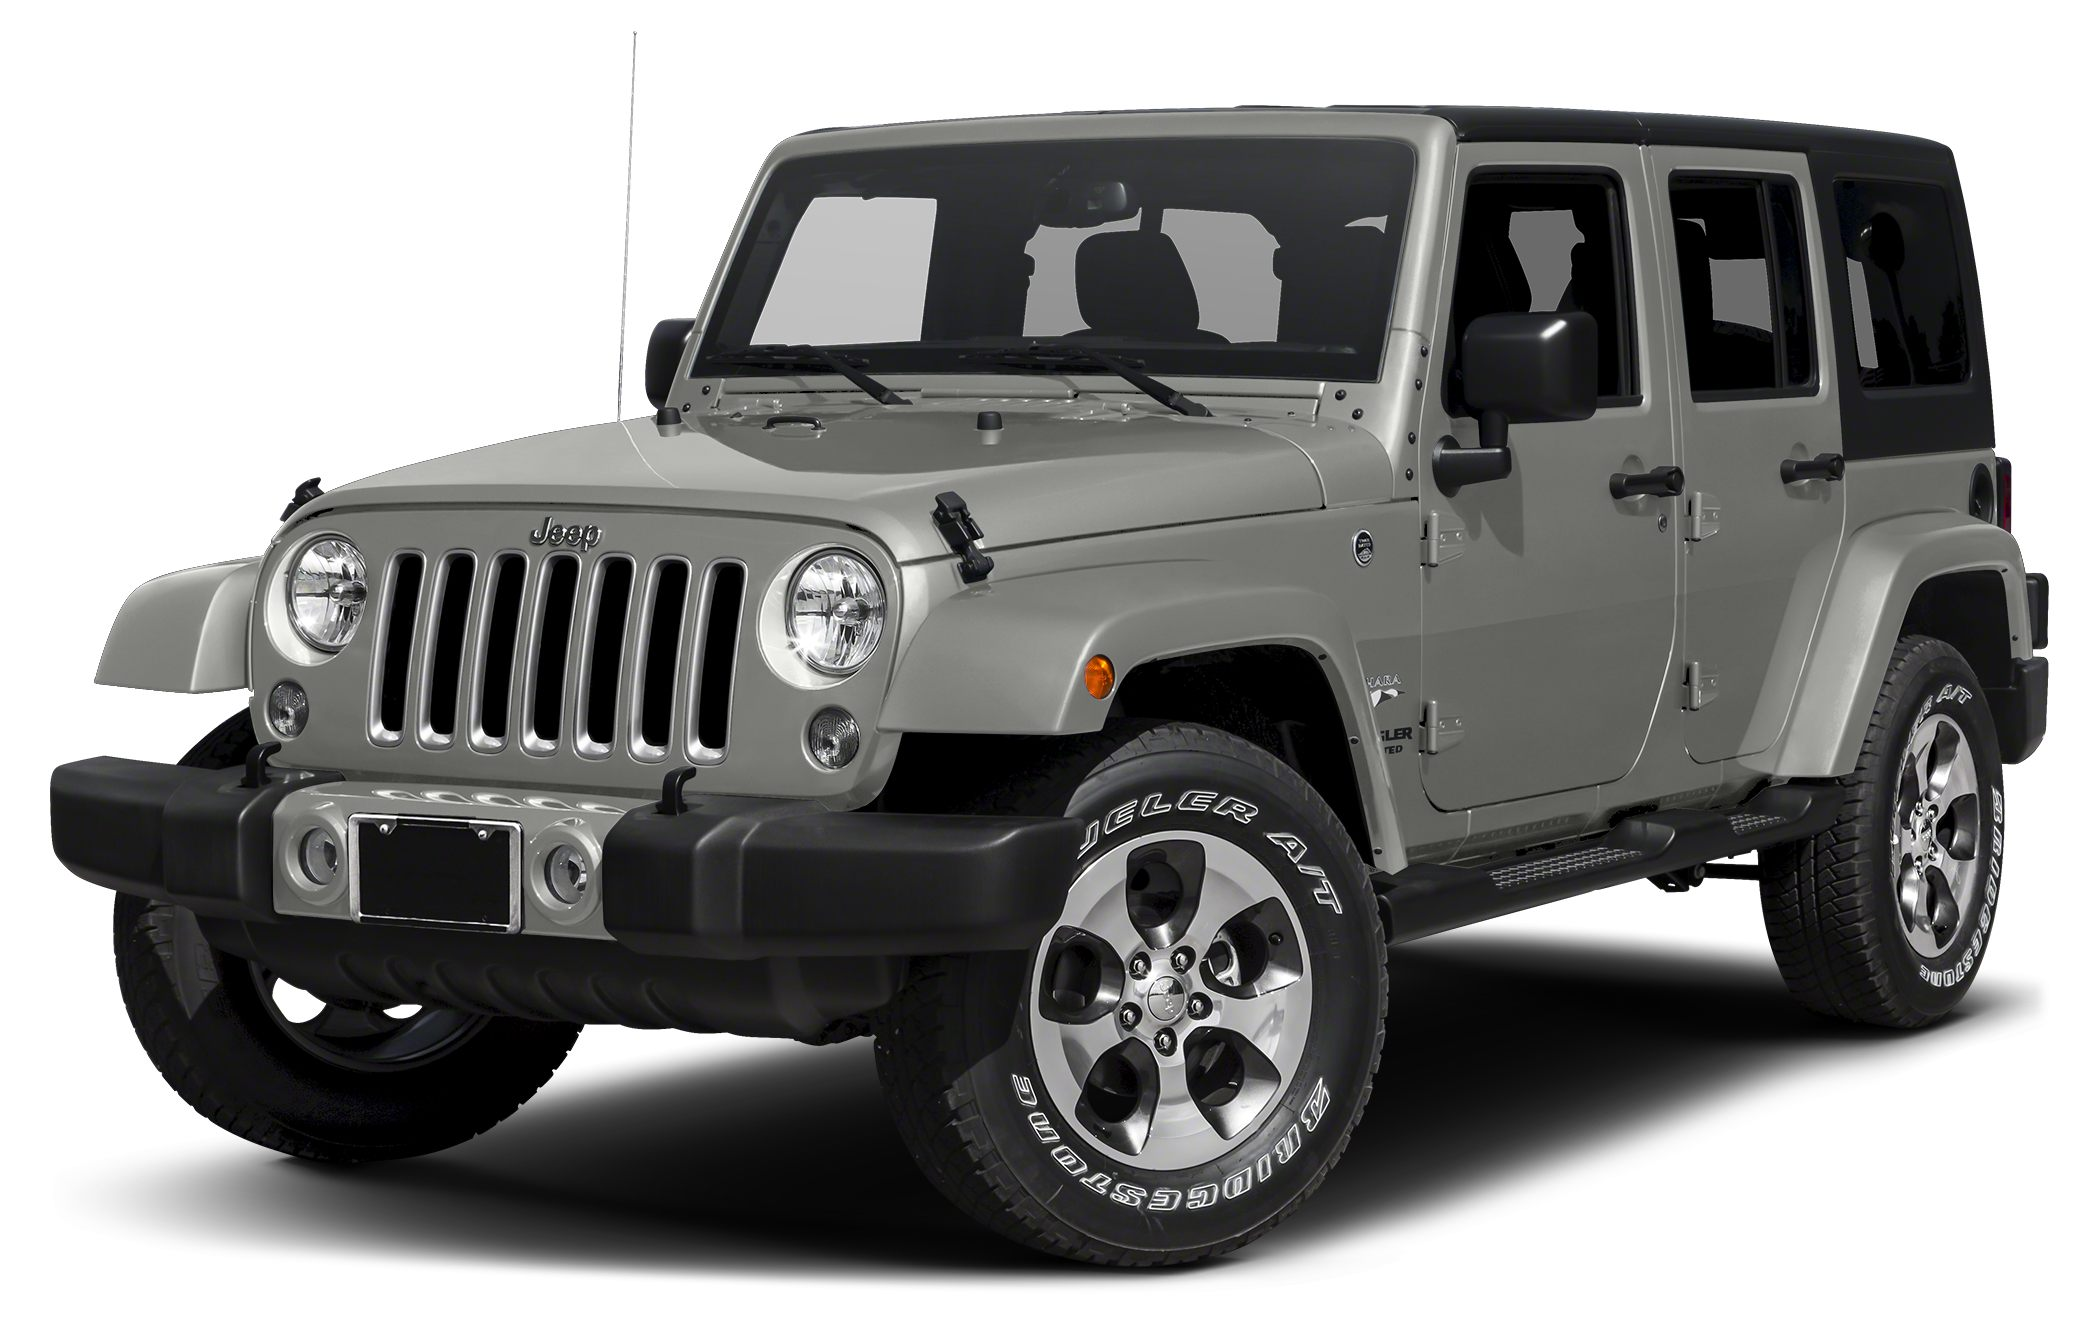 2015 Jeep Wrangler Unlimited Sahara Miles 24433Color Billet Silver Clearcoat Metallic Stock JG